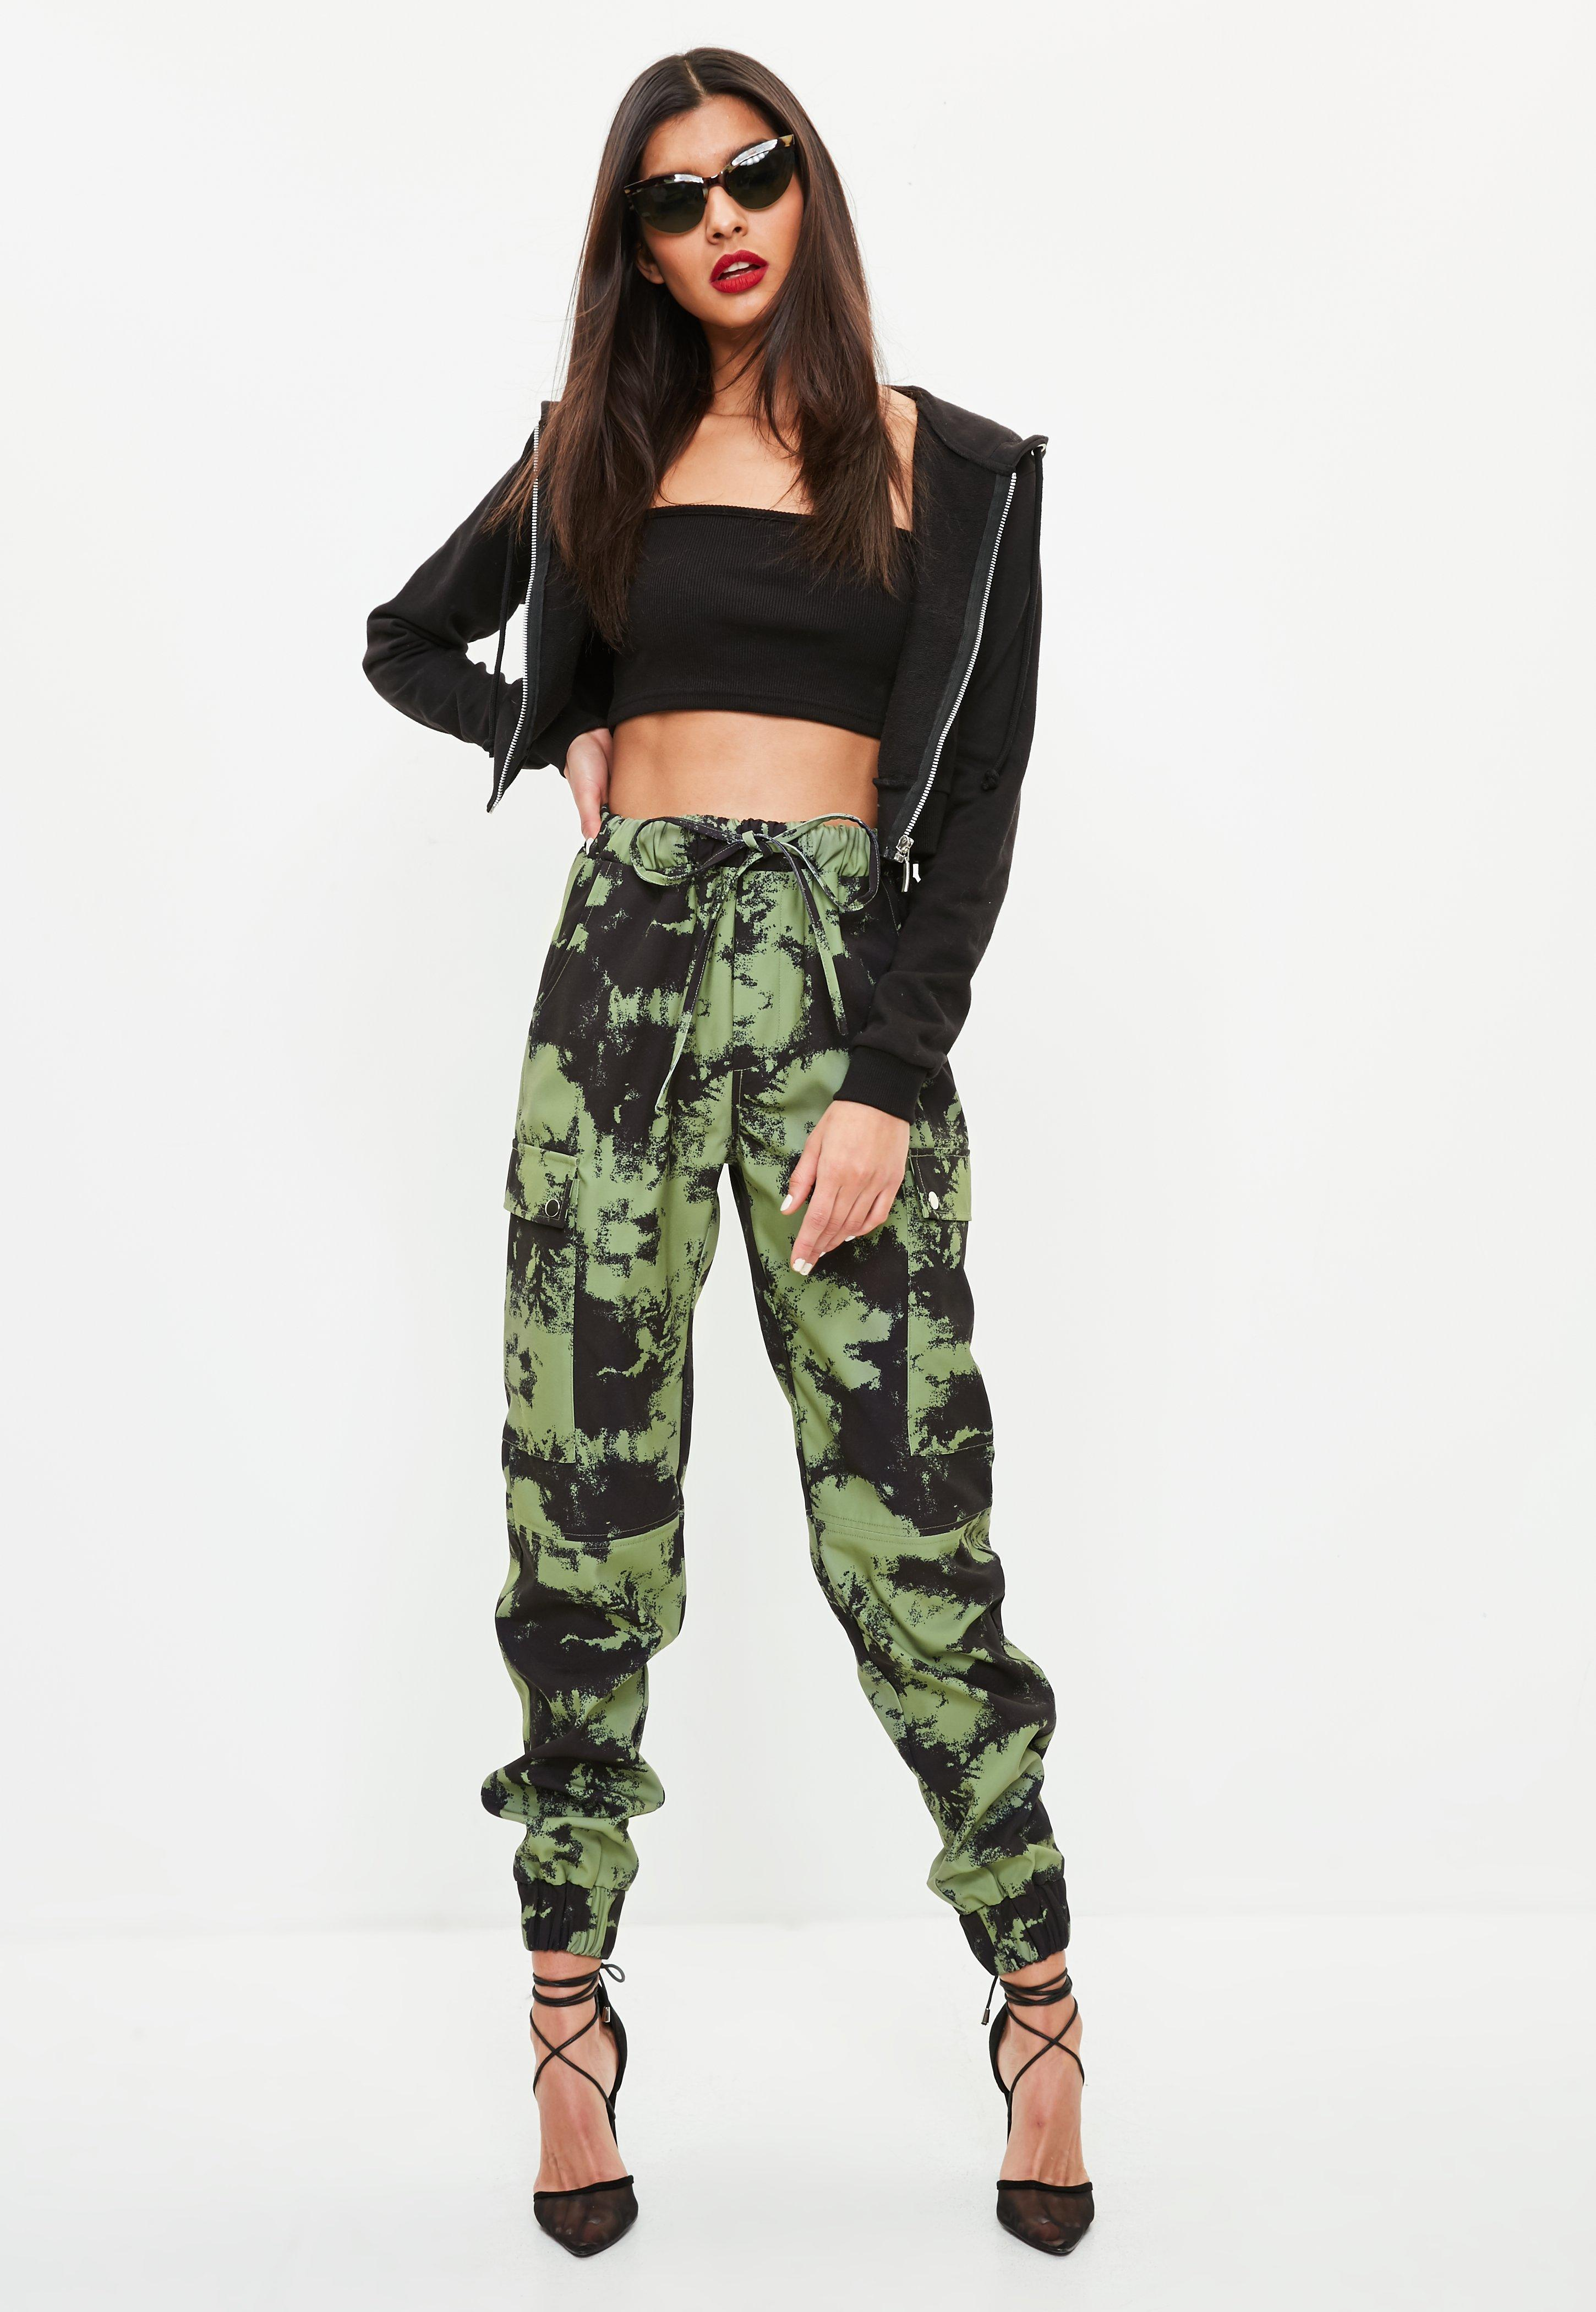 317797add943 Gallery. Previously sold at: Missguided · Women's Printed Trousers